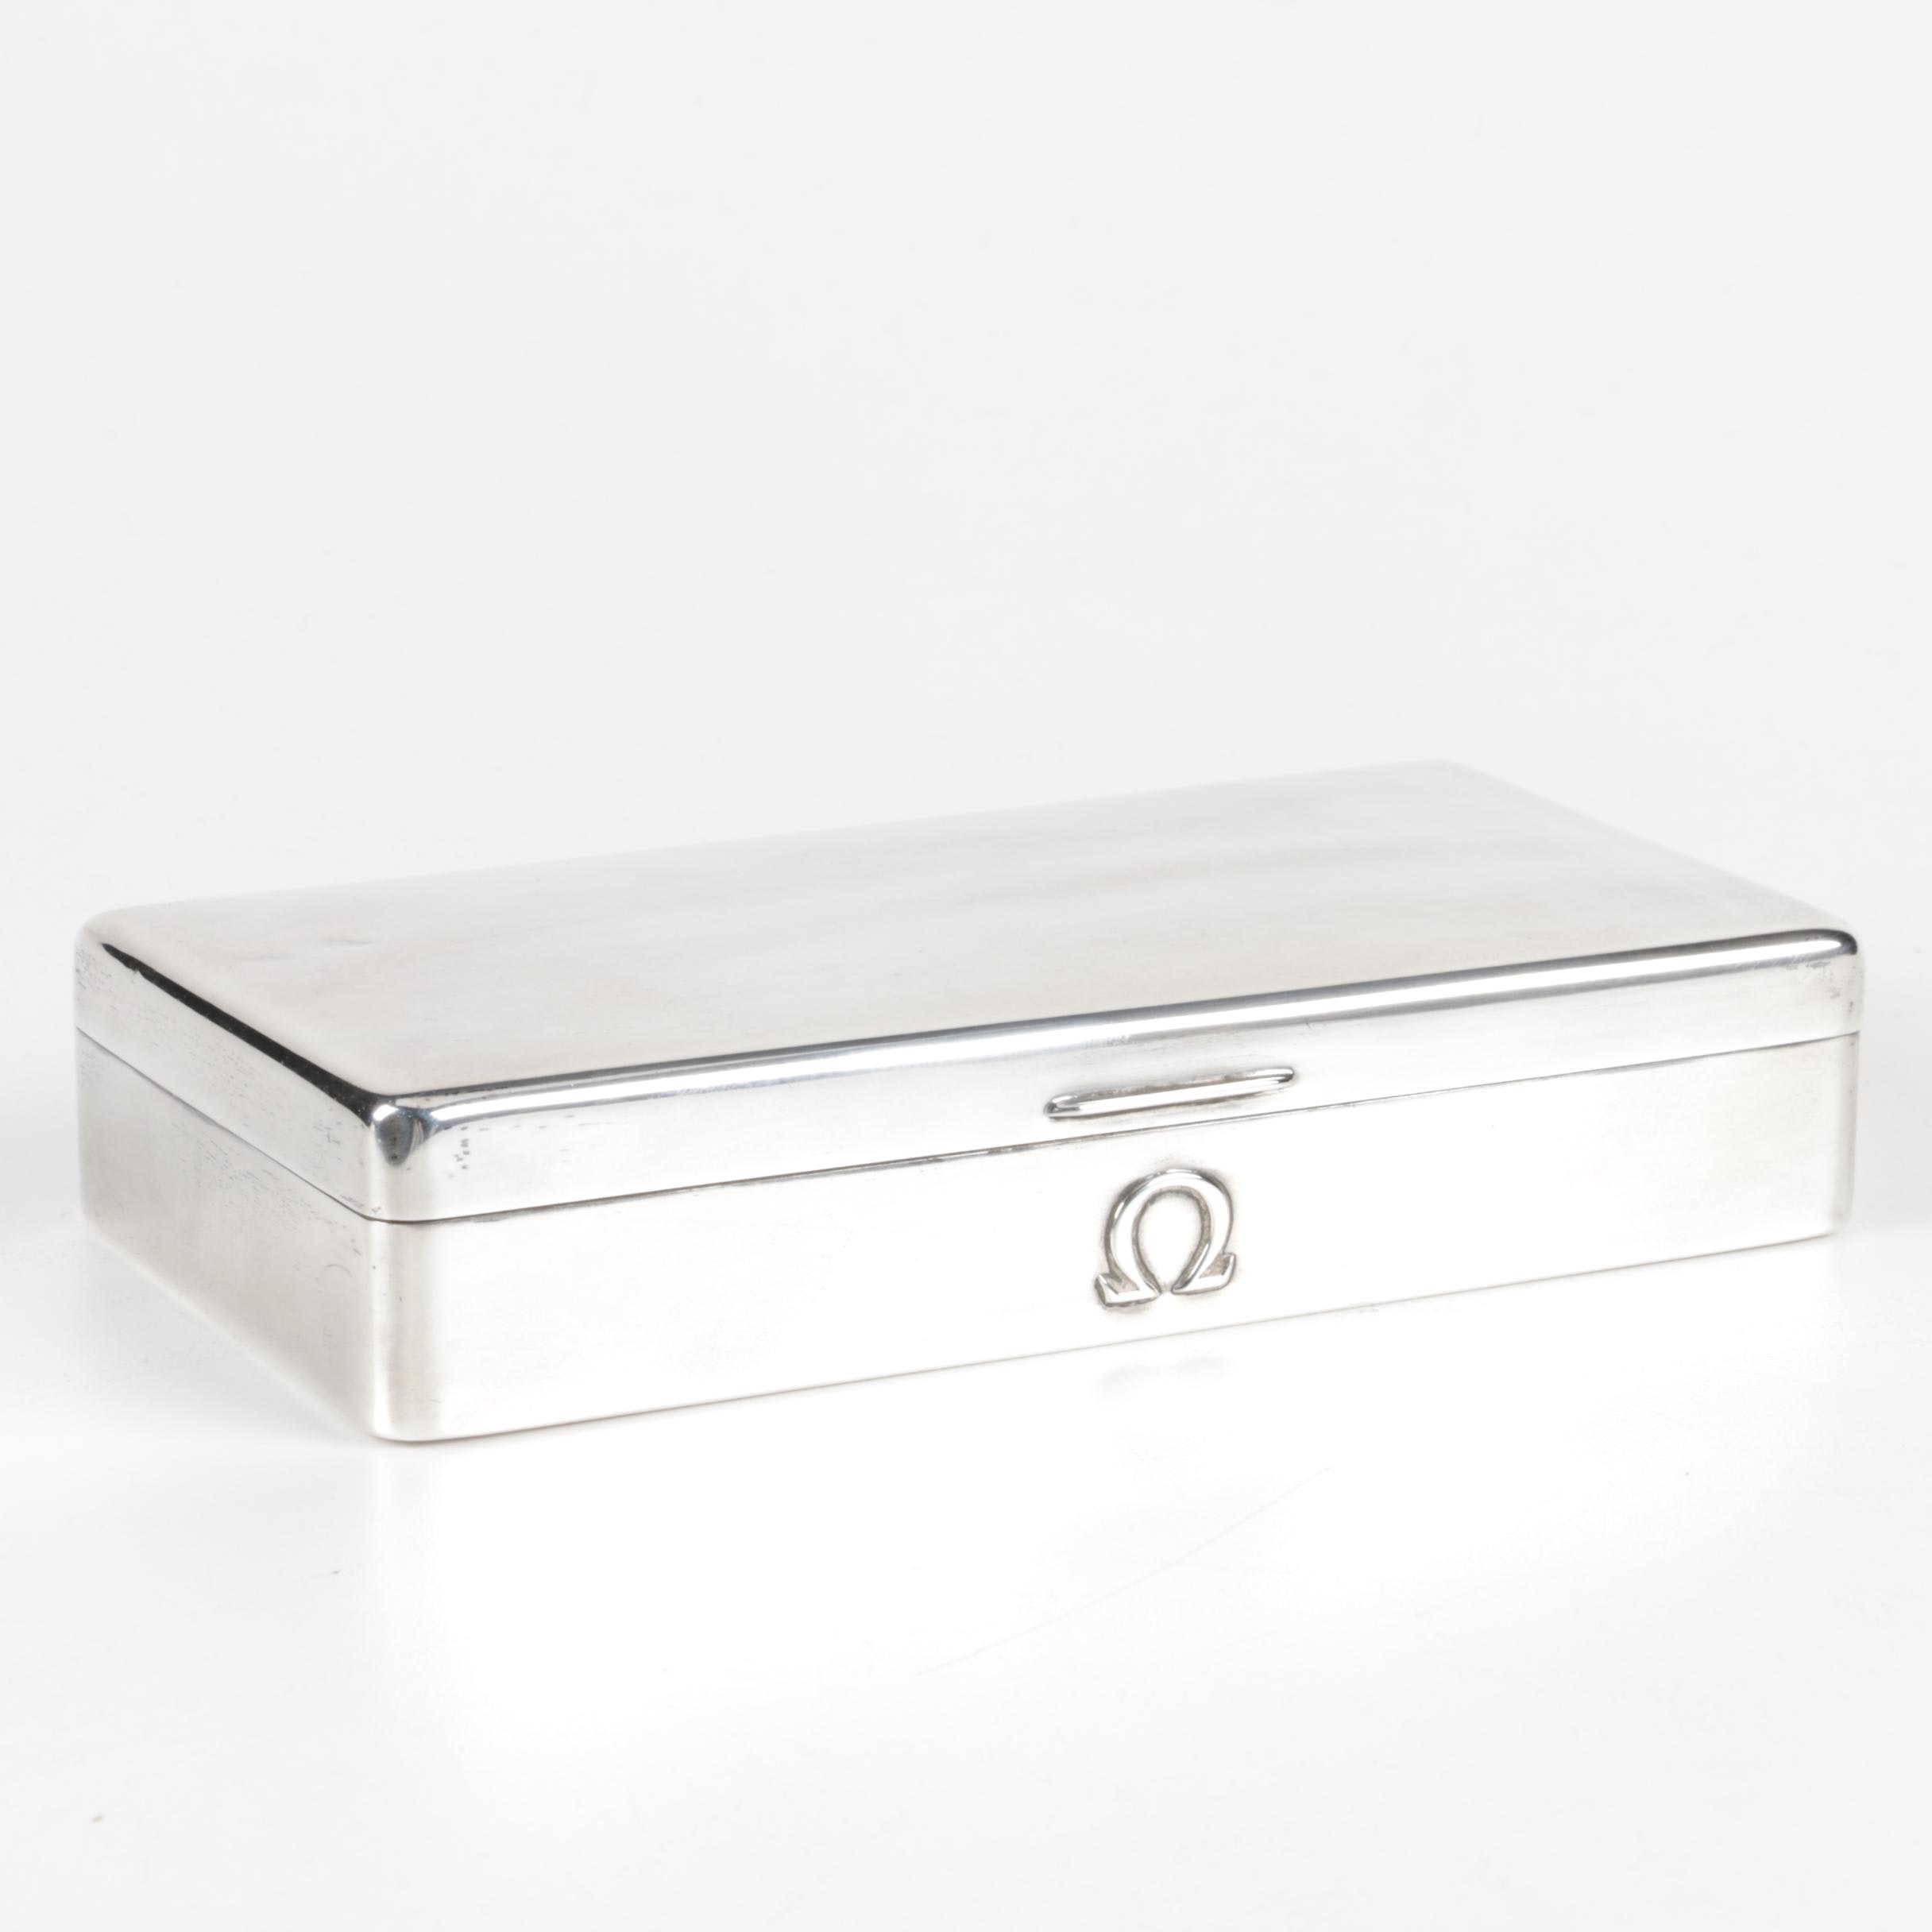 1950 Adie Brothers Ltd. Sterling Silver Box